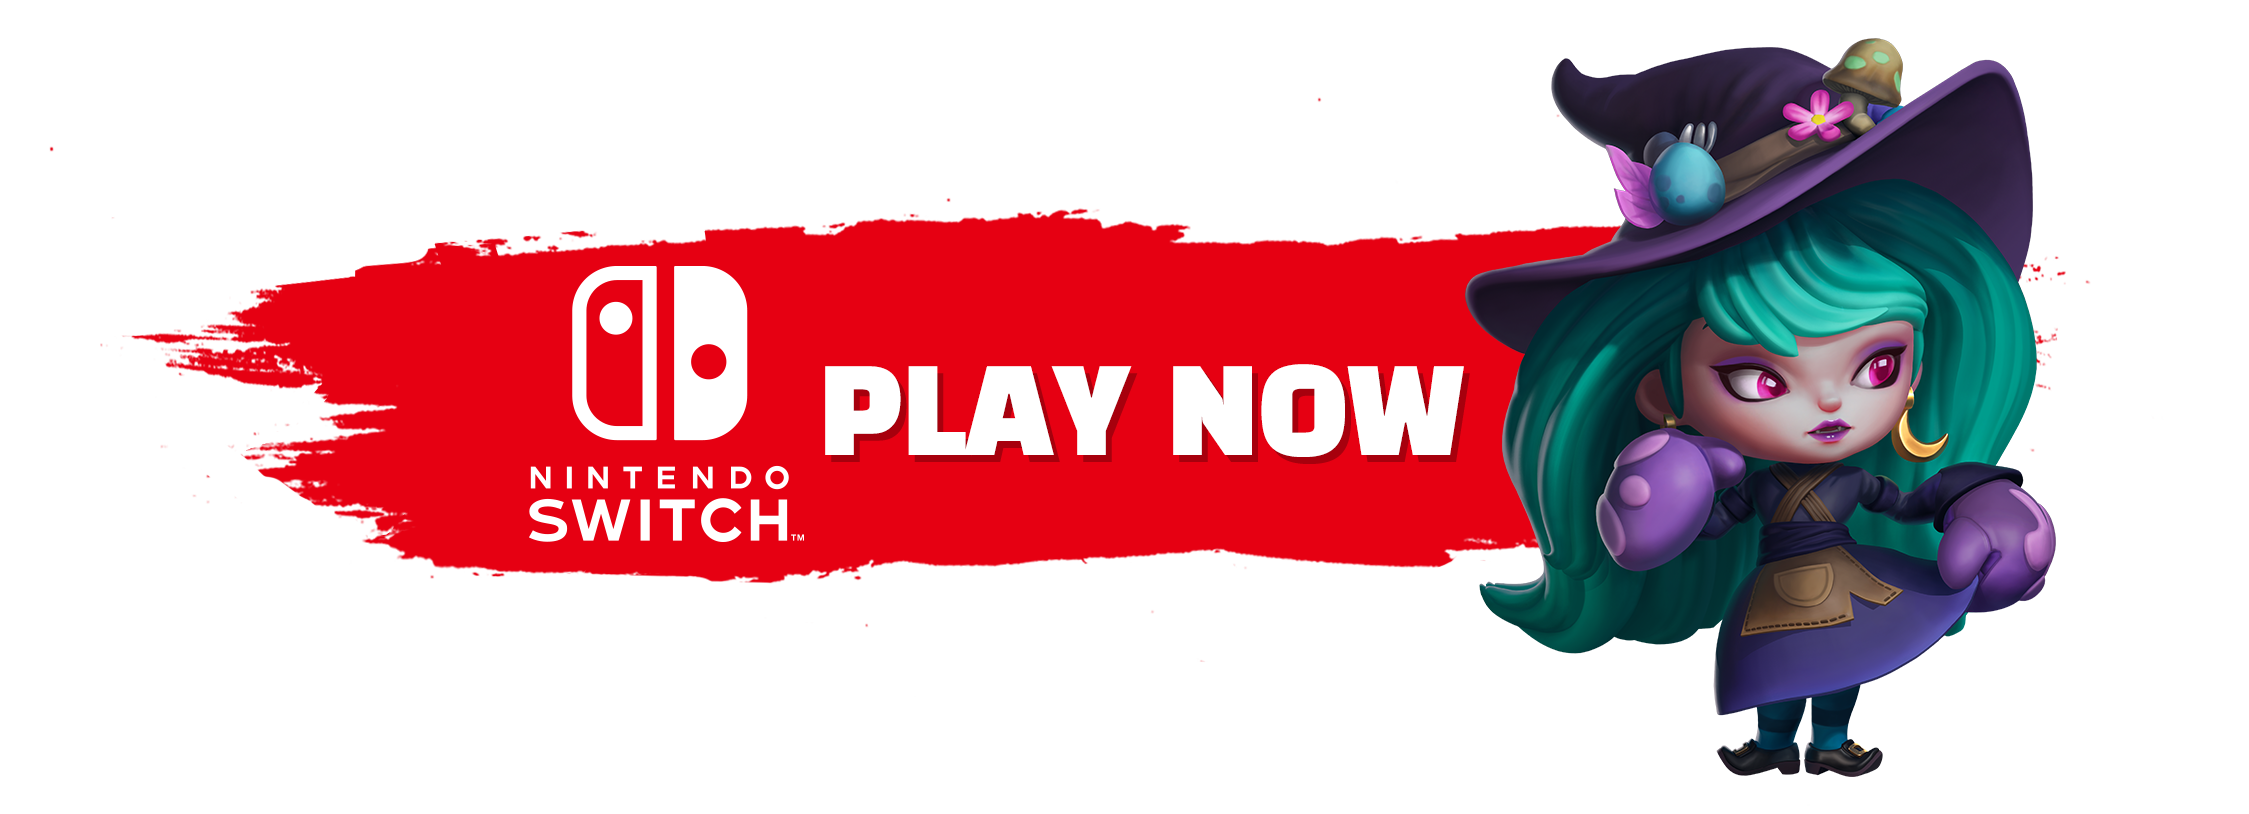 Nintendo Switch Play Now